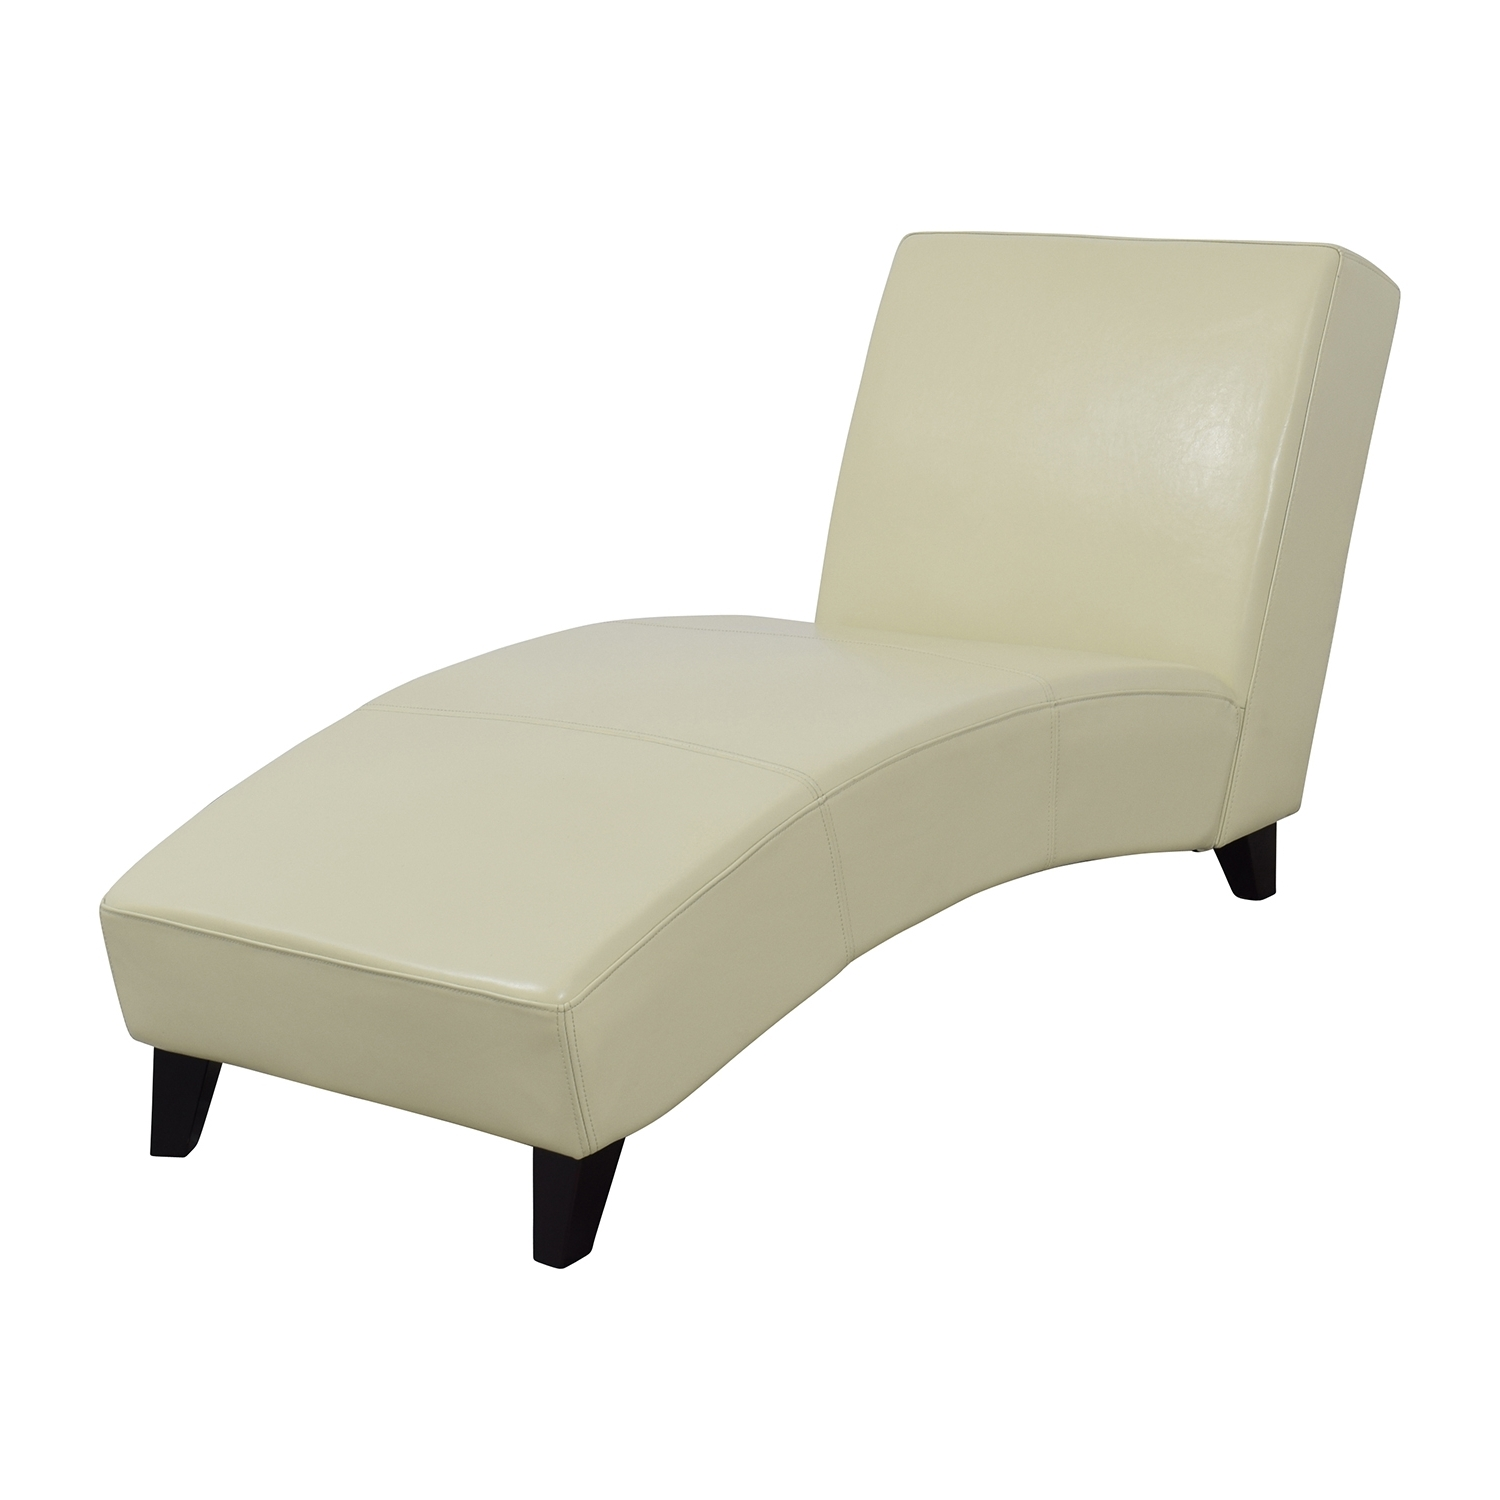 [%90% Off – Wayfair Wayfair White Leather Chaise / Sofas With Most Recently Released White Leather Chaises|White Leather Chaises In Most Recent 90% Off – Wayfair Wayfair White Leather Chaise / Sofas|Best And Newest White Leather Chaises Pertaining To 90% Off – Wayfair Wayfair White Leather Chaise / Sofas|Well Liked 90% Off – Wayfair Wayfair White Leather Chaise / Sofas Pertaining To White Leather Chaises%] (View 1 of 15)